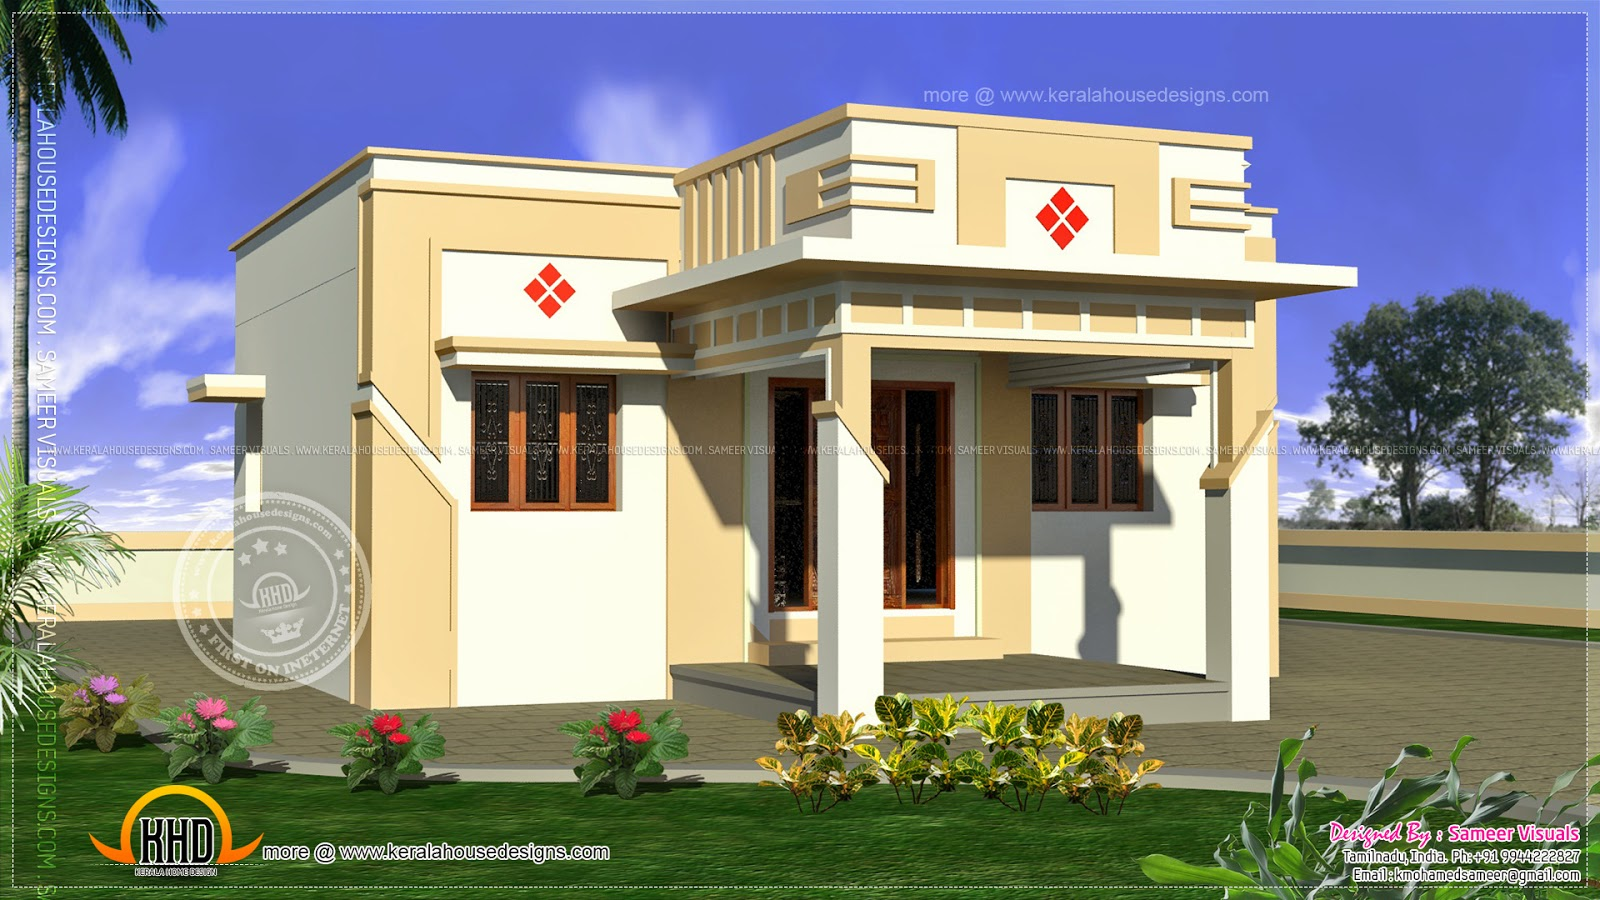 Simple and low budget house plans home design architecture for Low budget home plans